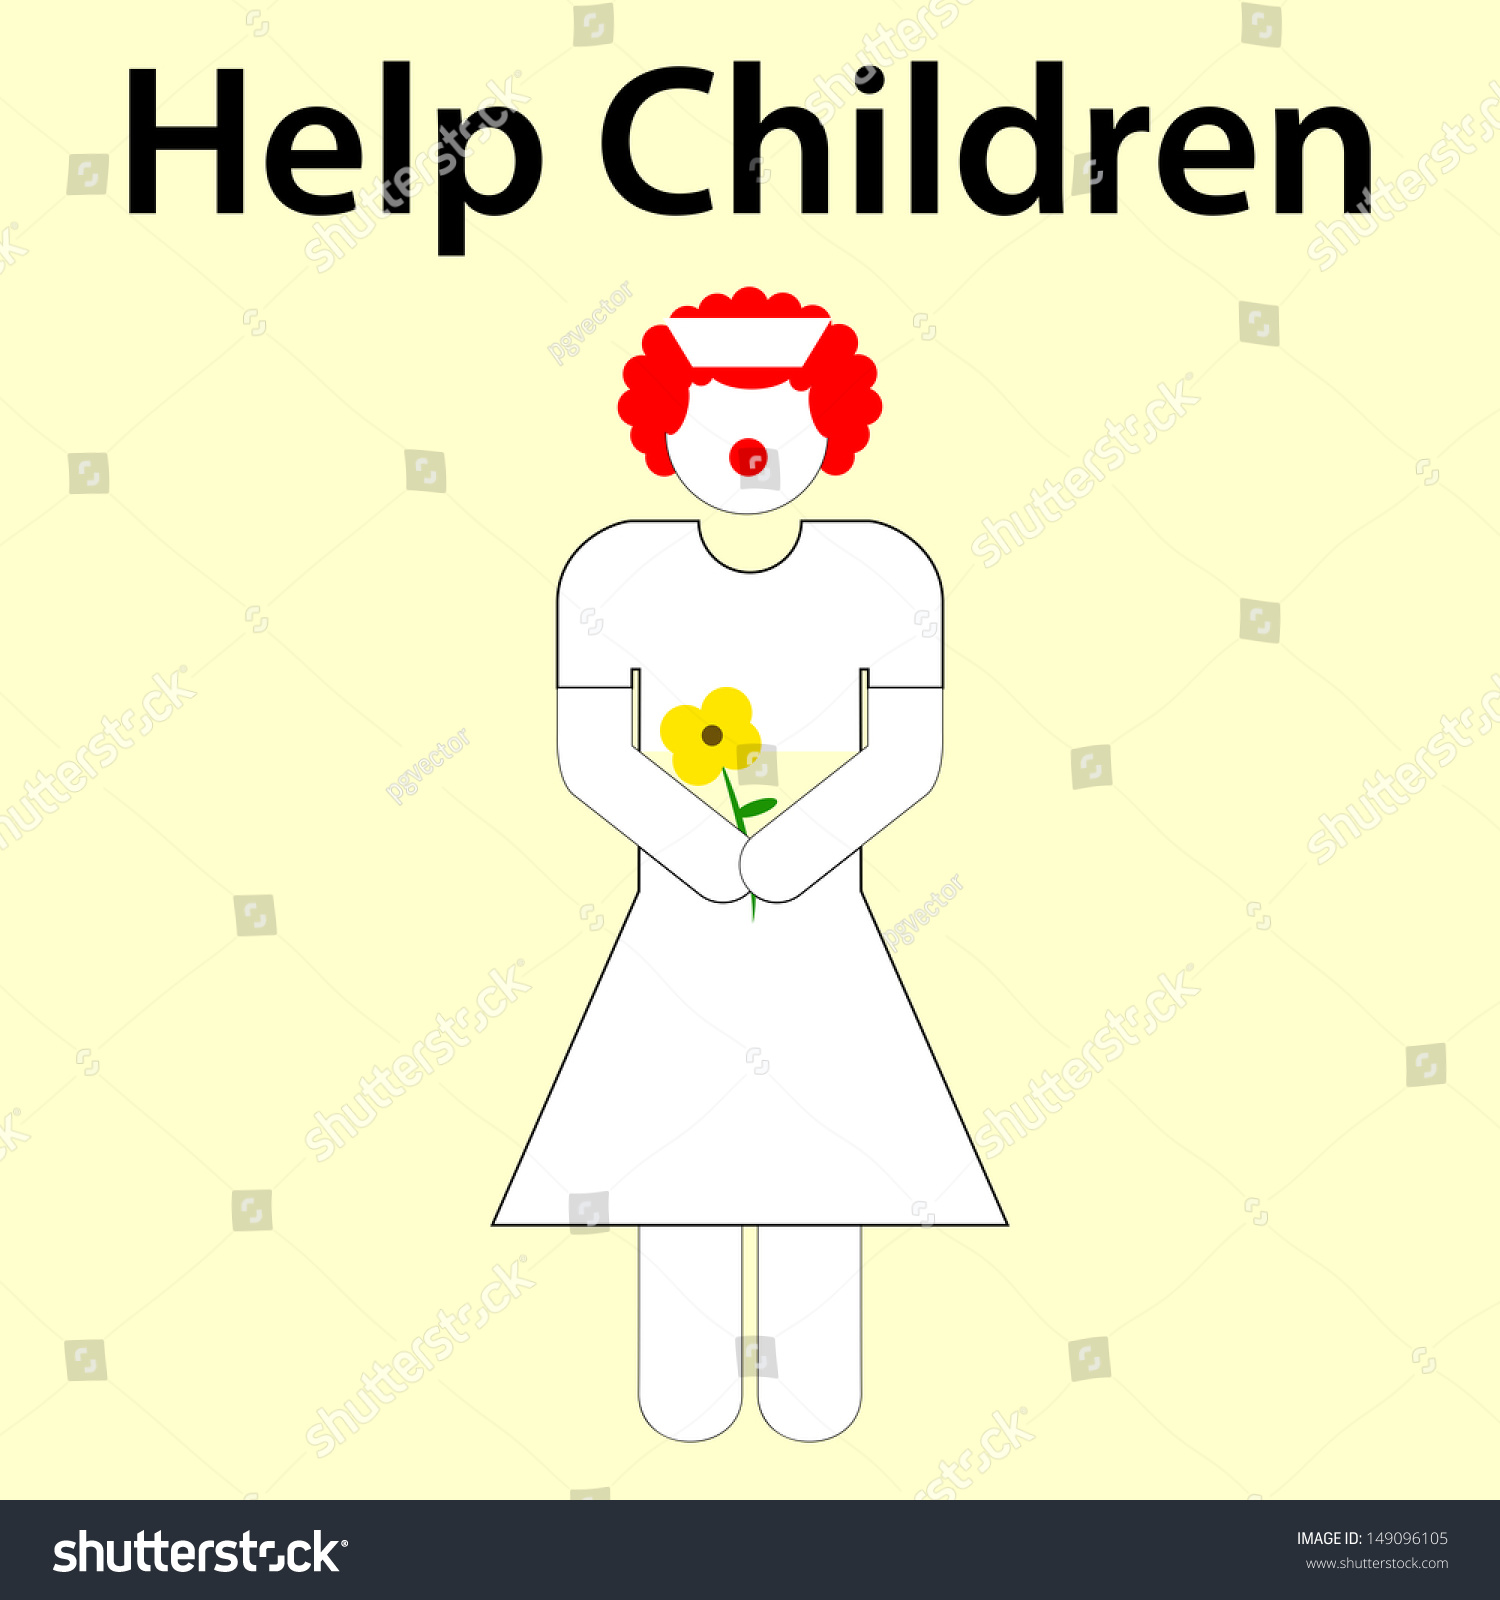 Symbolism woman white uniform yellow flower stock vector 149096105 symbolism of a woman in a white uniform and a yellow flower who helps children mightylinksfo